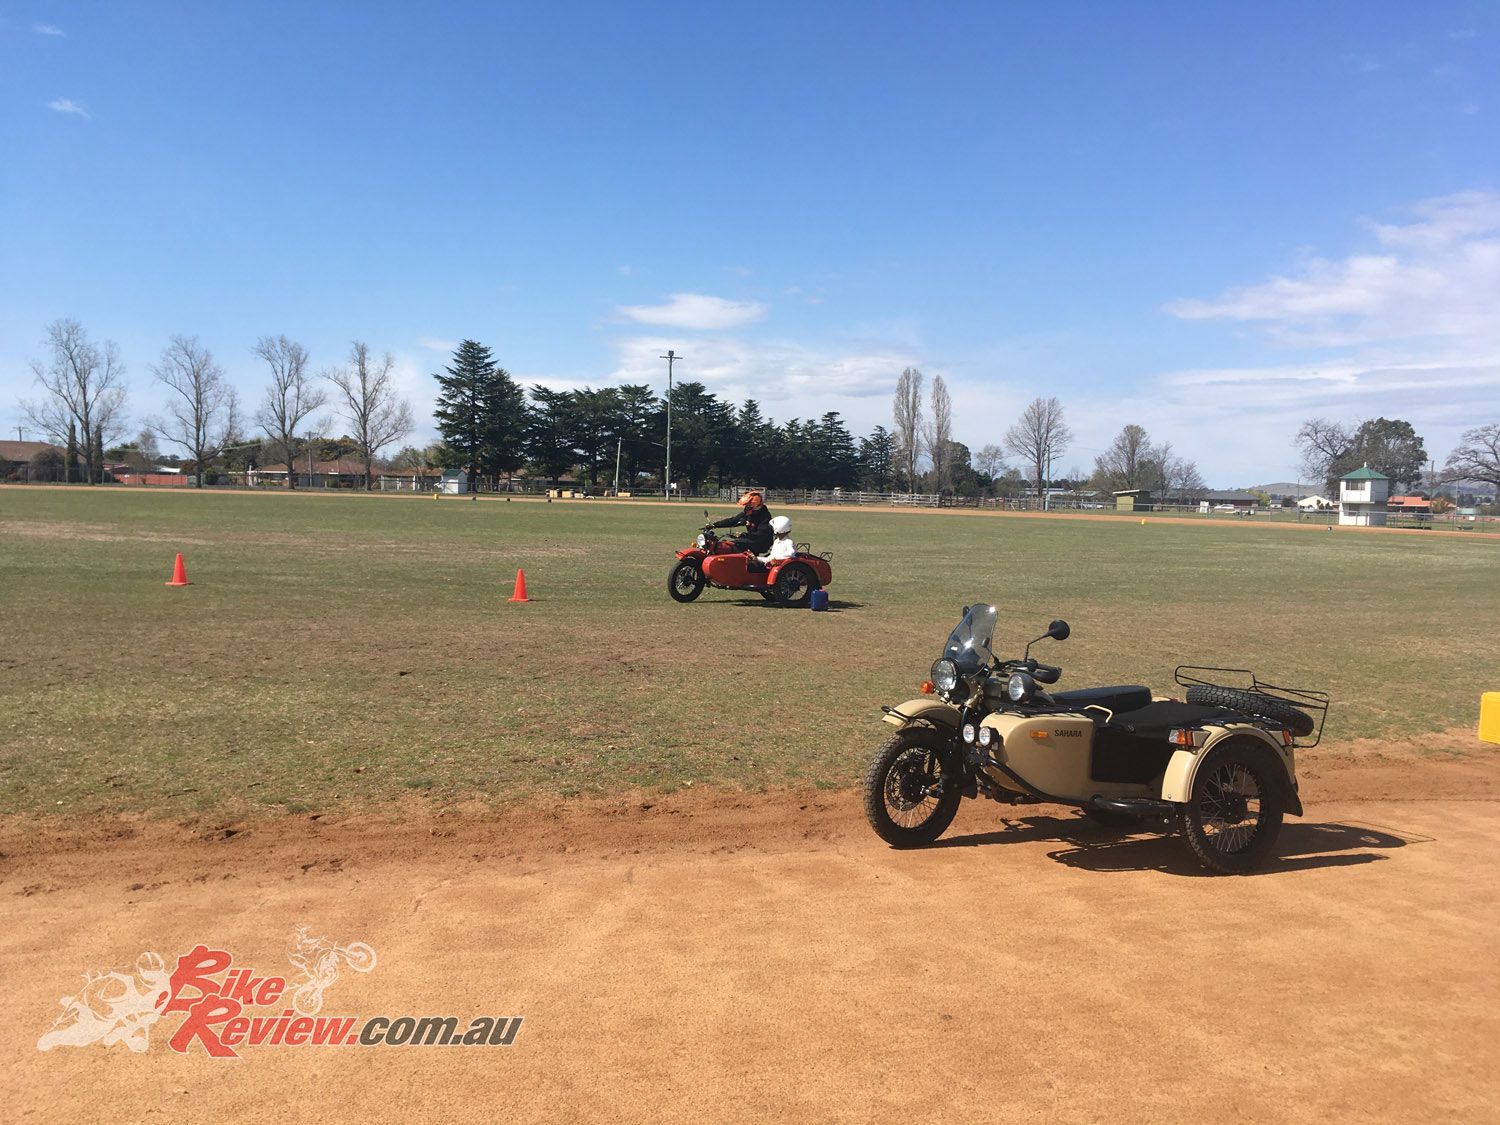 The opportunity to test a sidecar for the first time in the safety of a closed environment rather than on the open road was fantastic for those keen to have a ride.